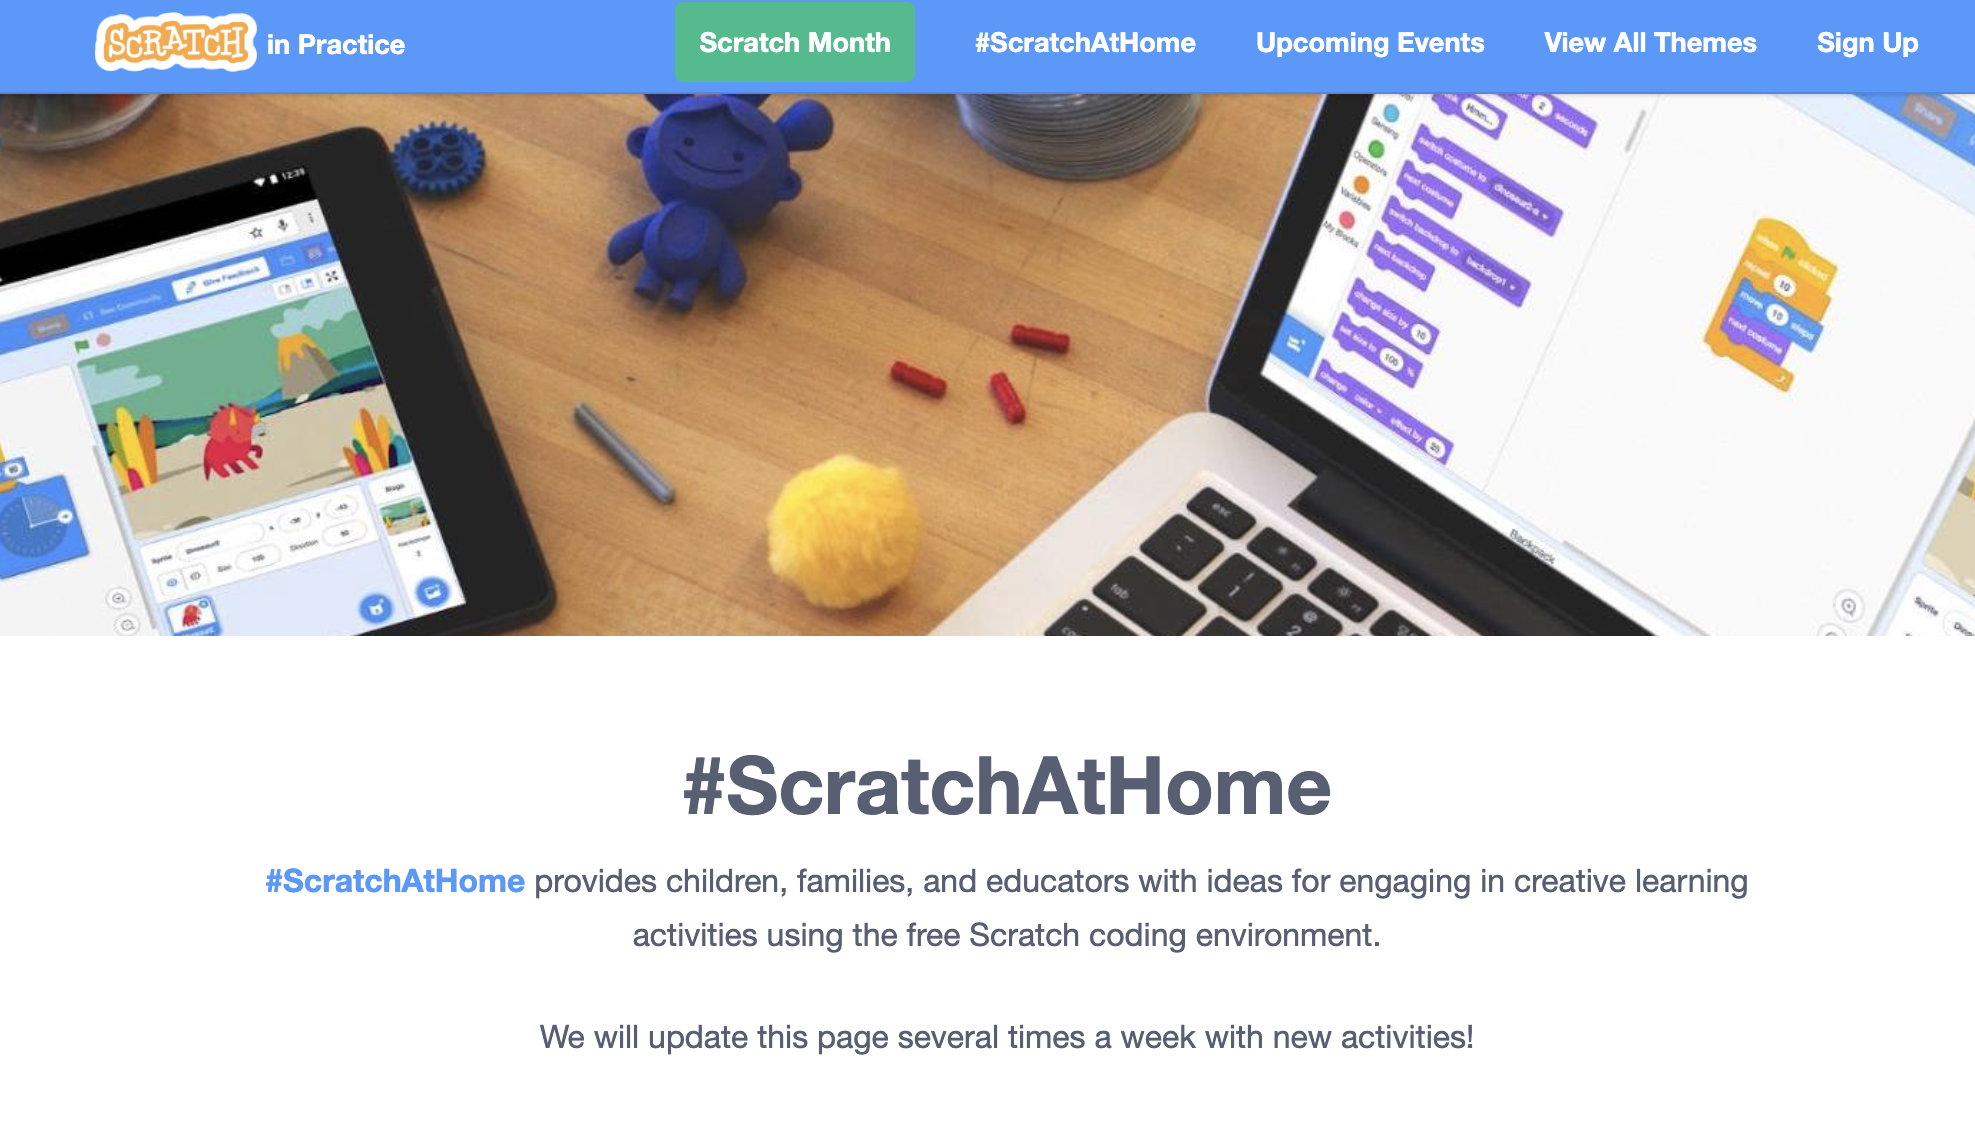 Scratch @ Home Page